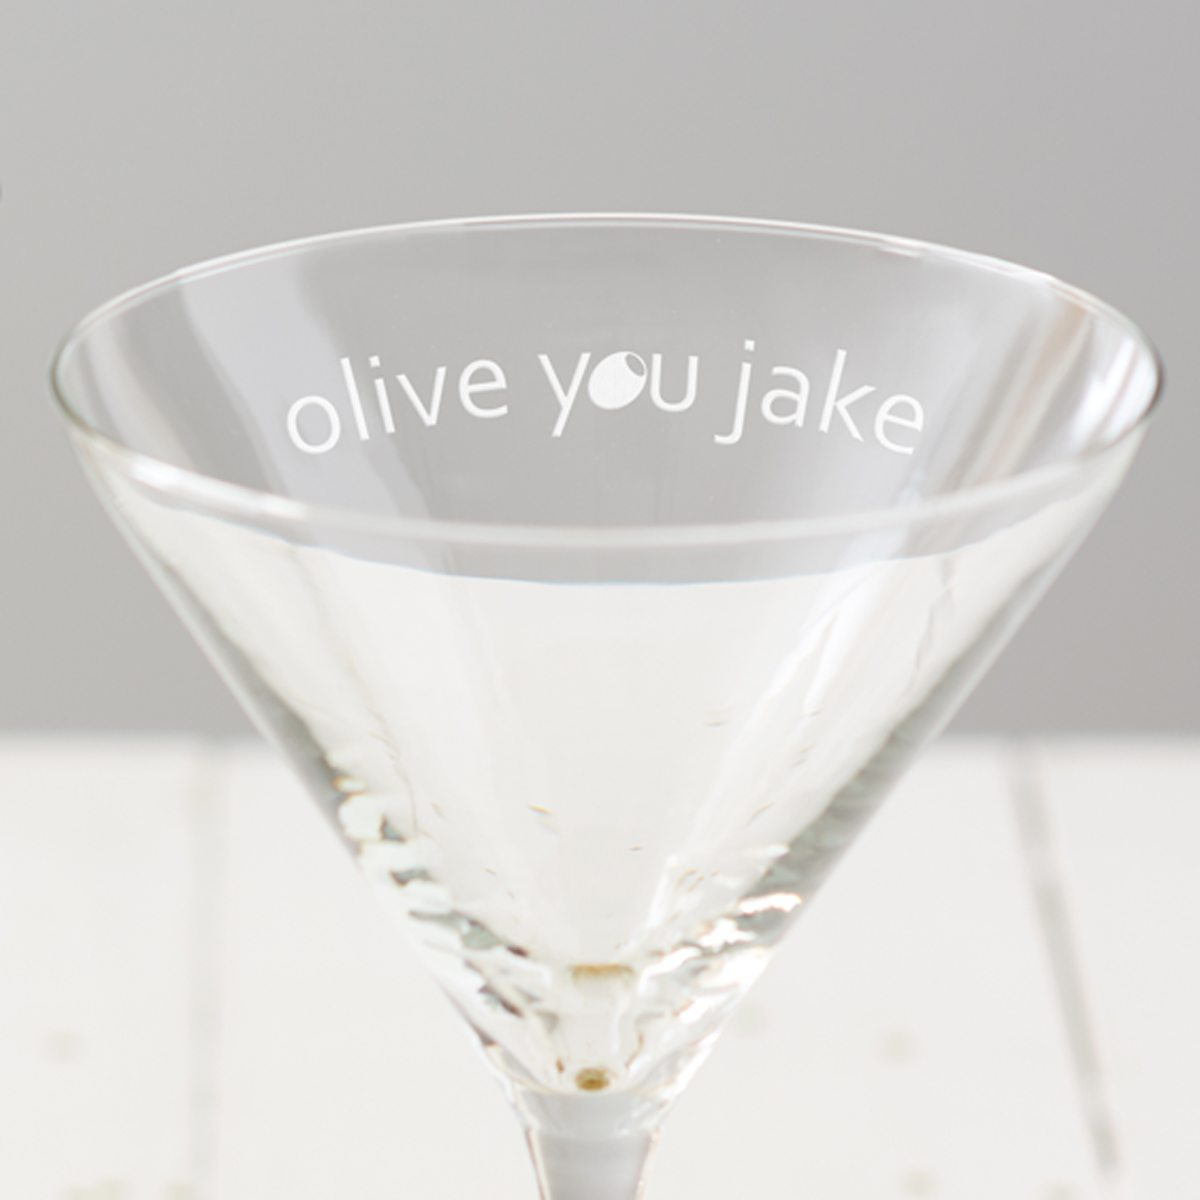 Personalised 'Olive You' Martini Glass